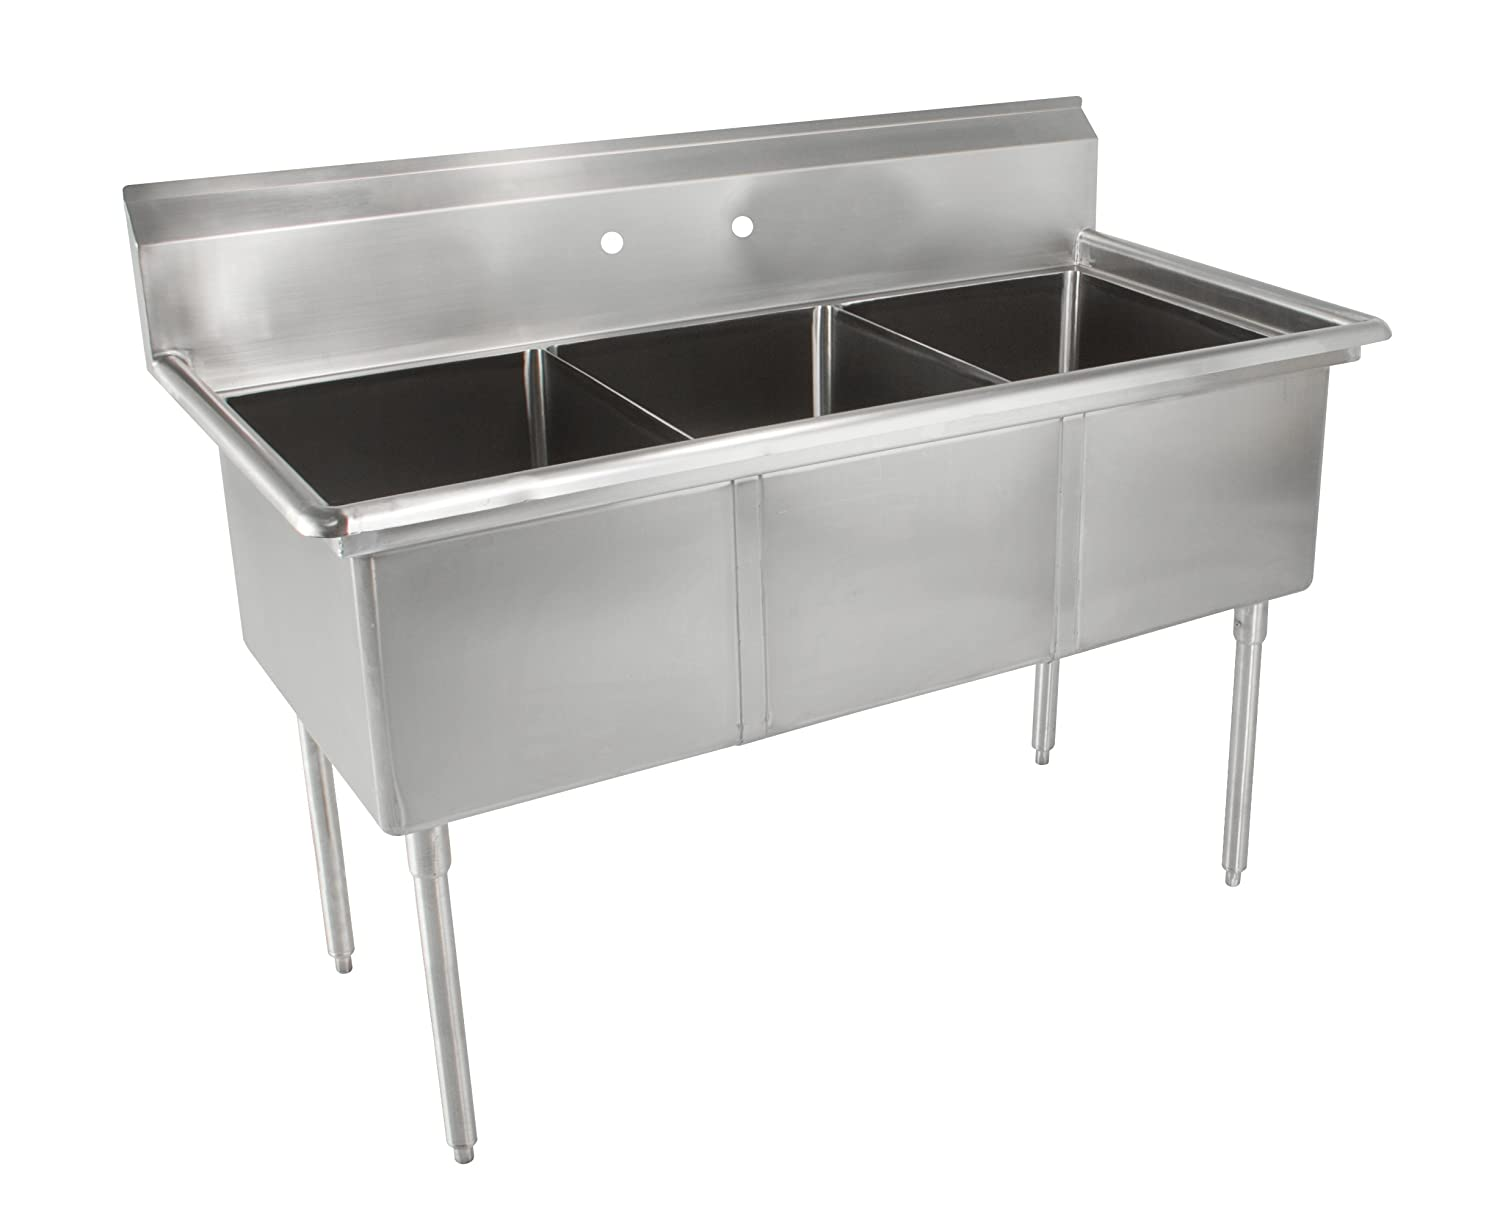 John Boos E Series Stainless Steel Sink.